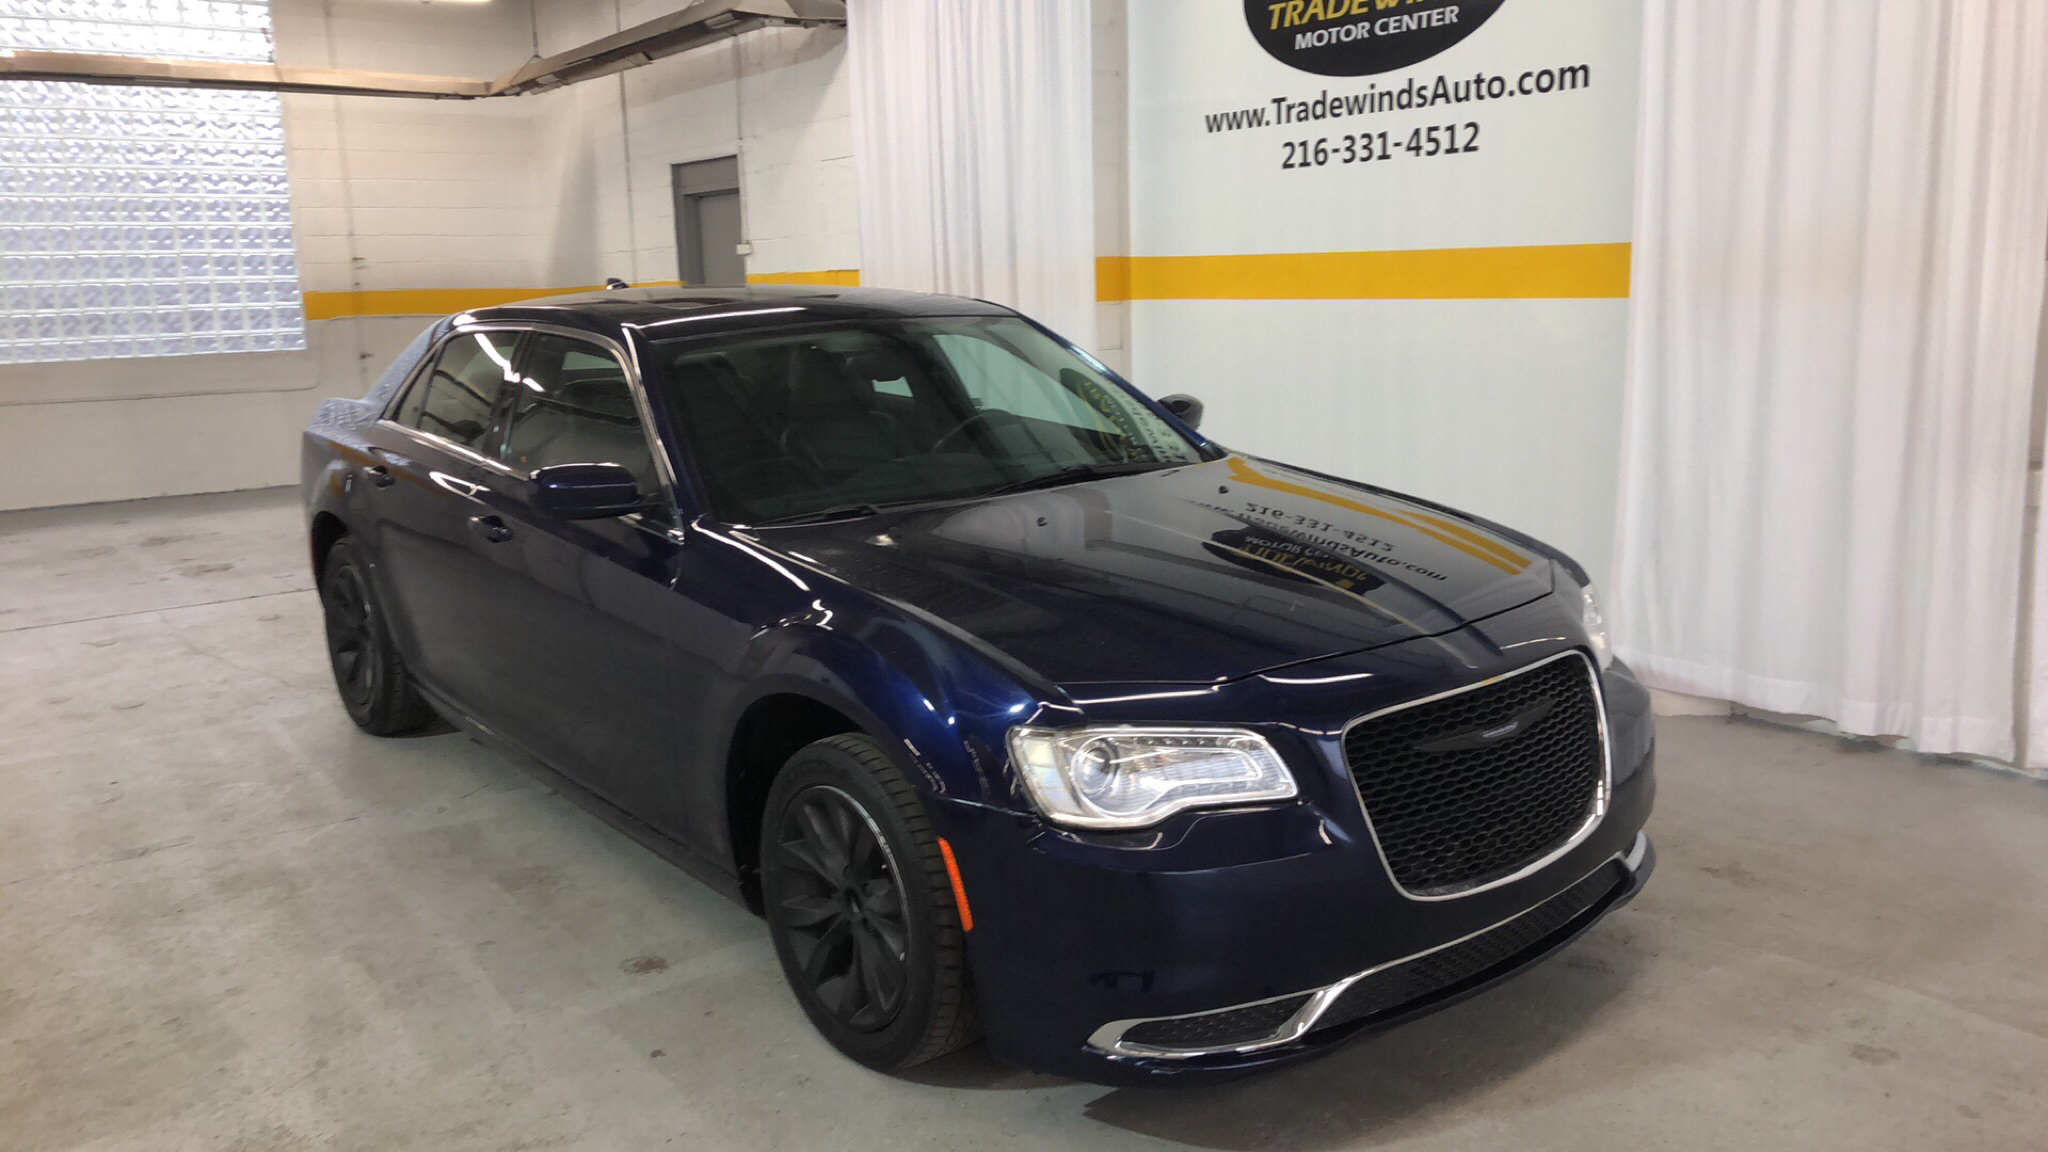 2016 CHRYSLER 300 LIMITED for sale at Tradewinds Motor Center